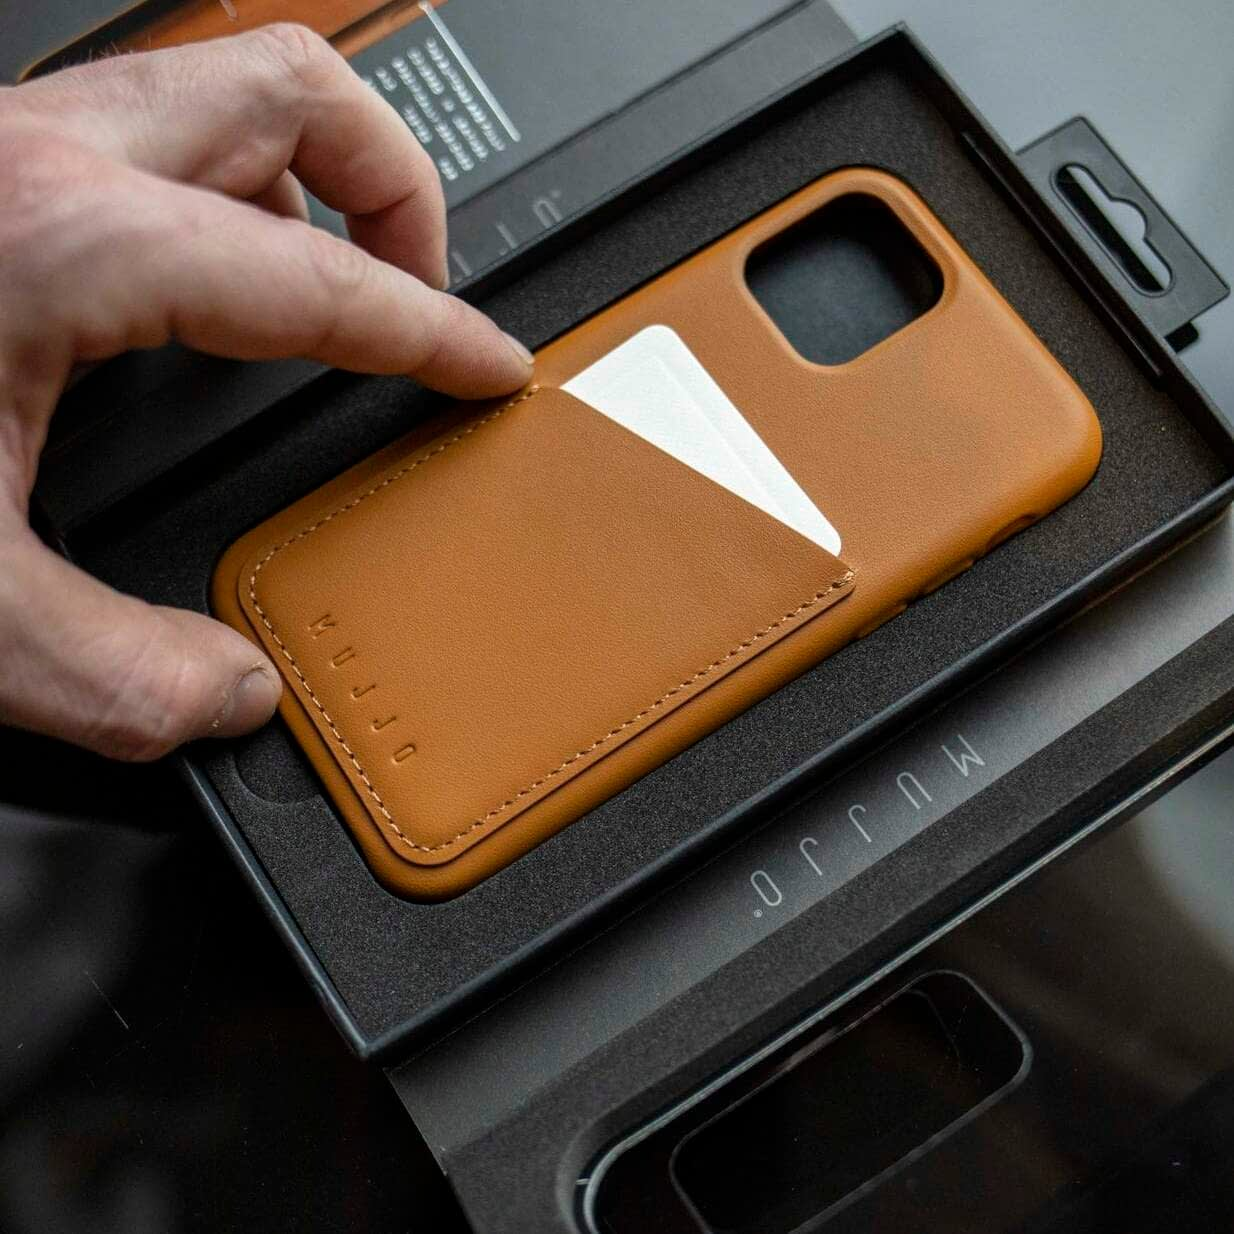 iphone cases CL 002 TN scaled